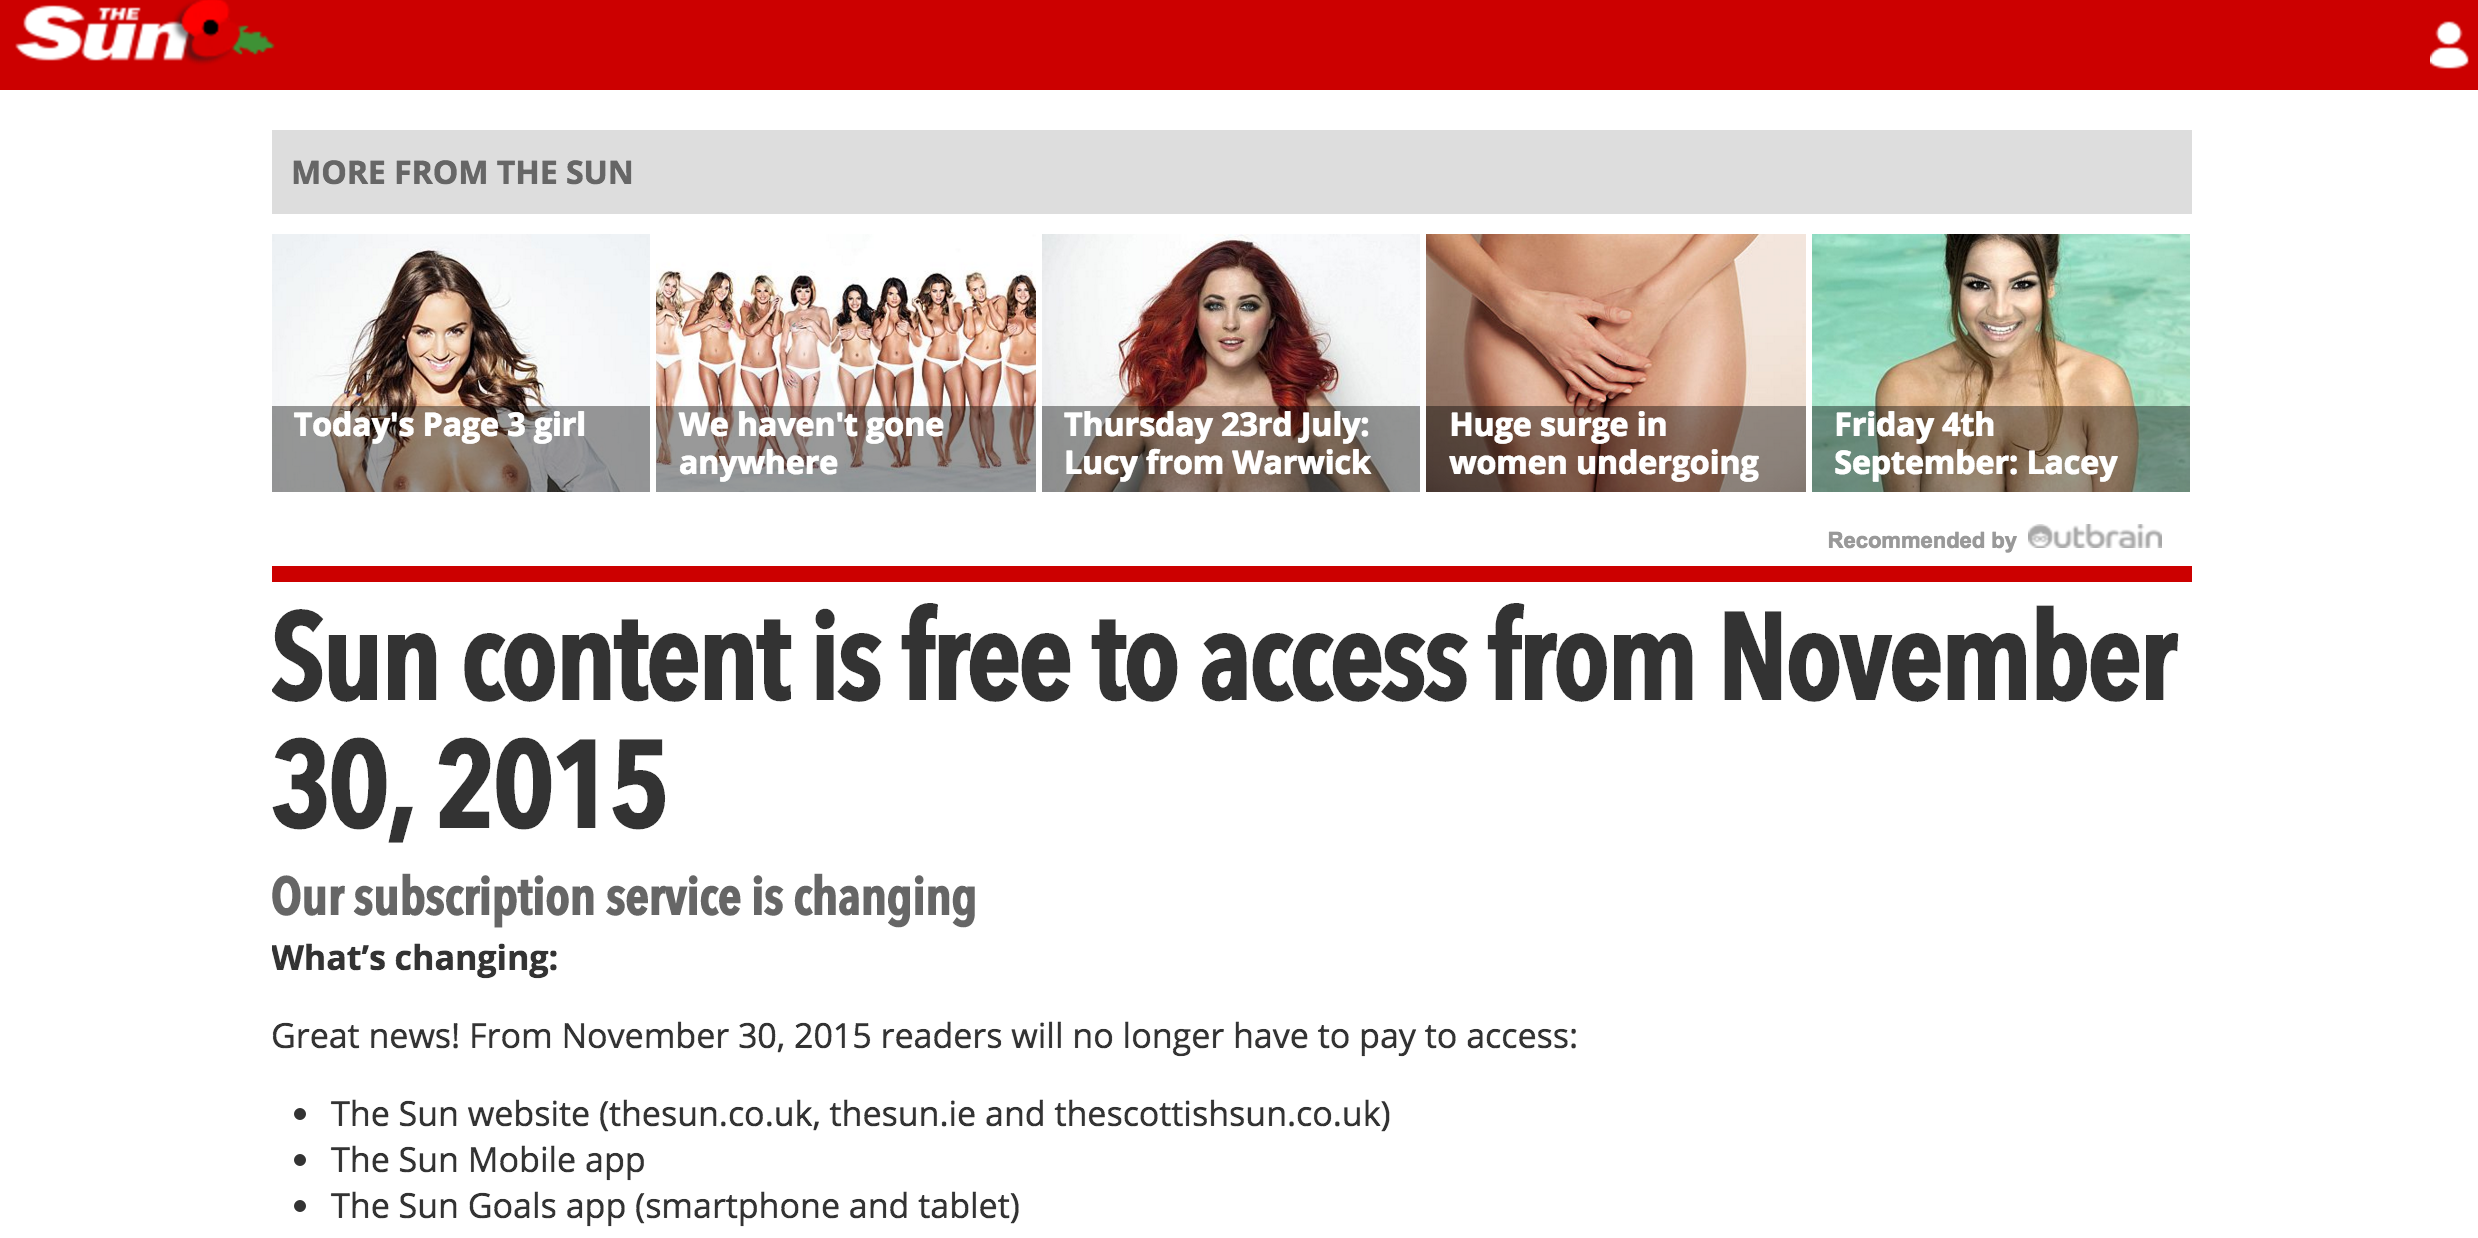 Sun_content_is_free_to_access_from_November_30_2015___The_Sun